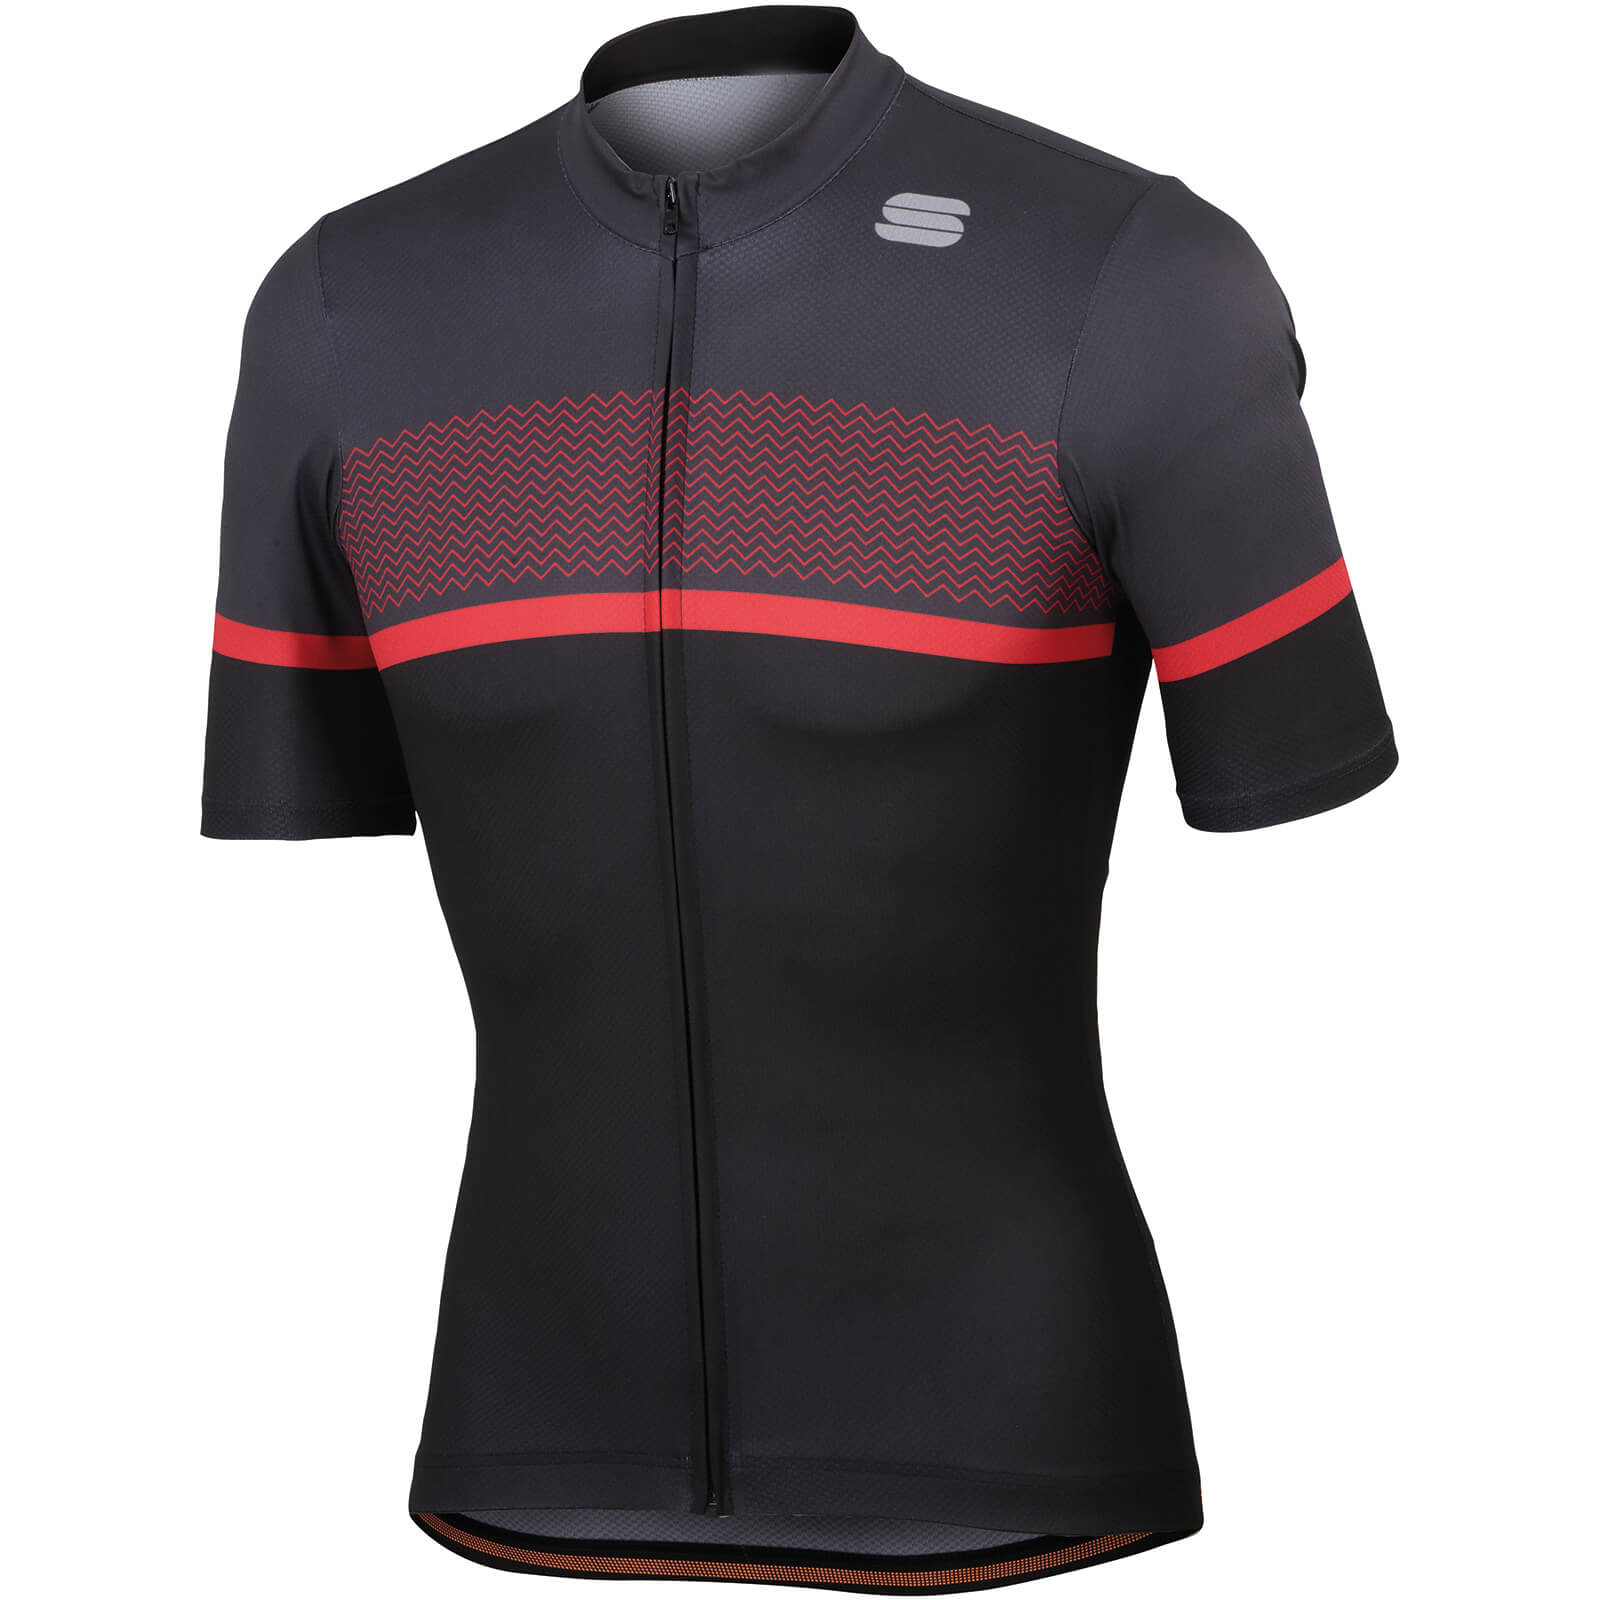 Sportful Frequence Jersey - Black/Anthracite/Red